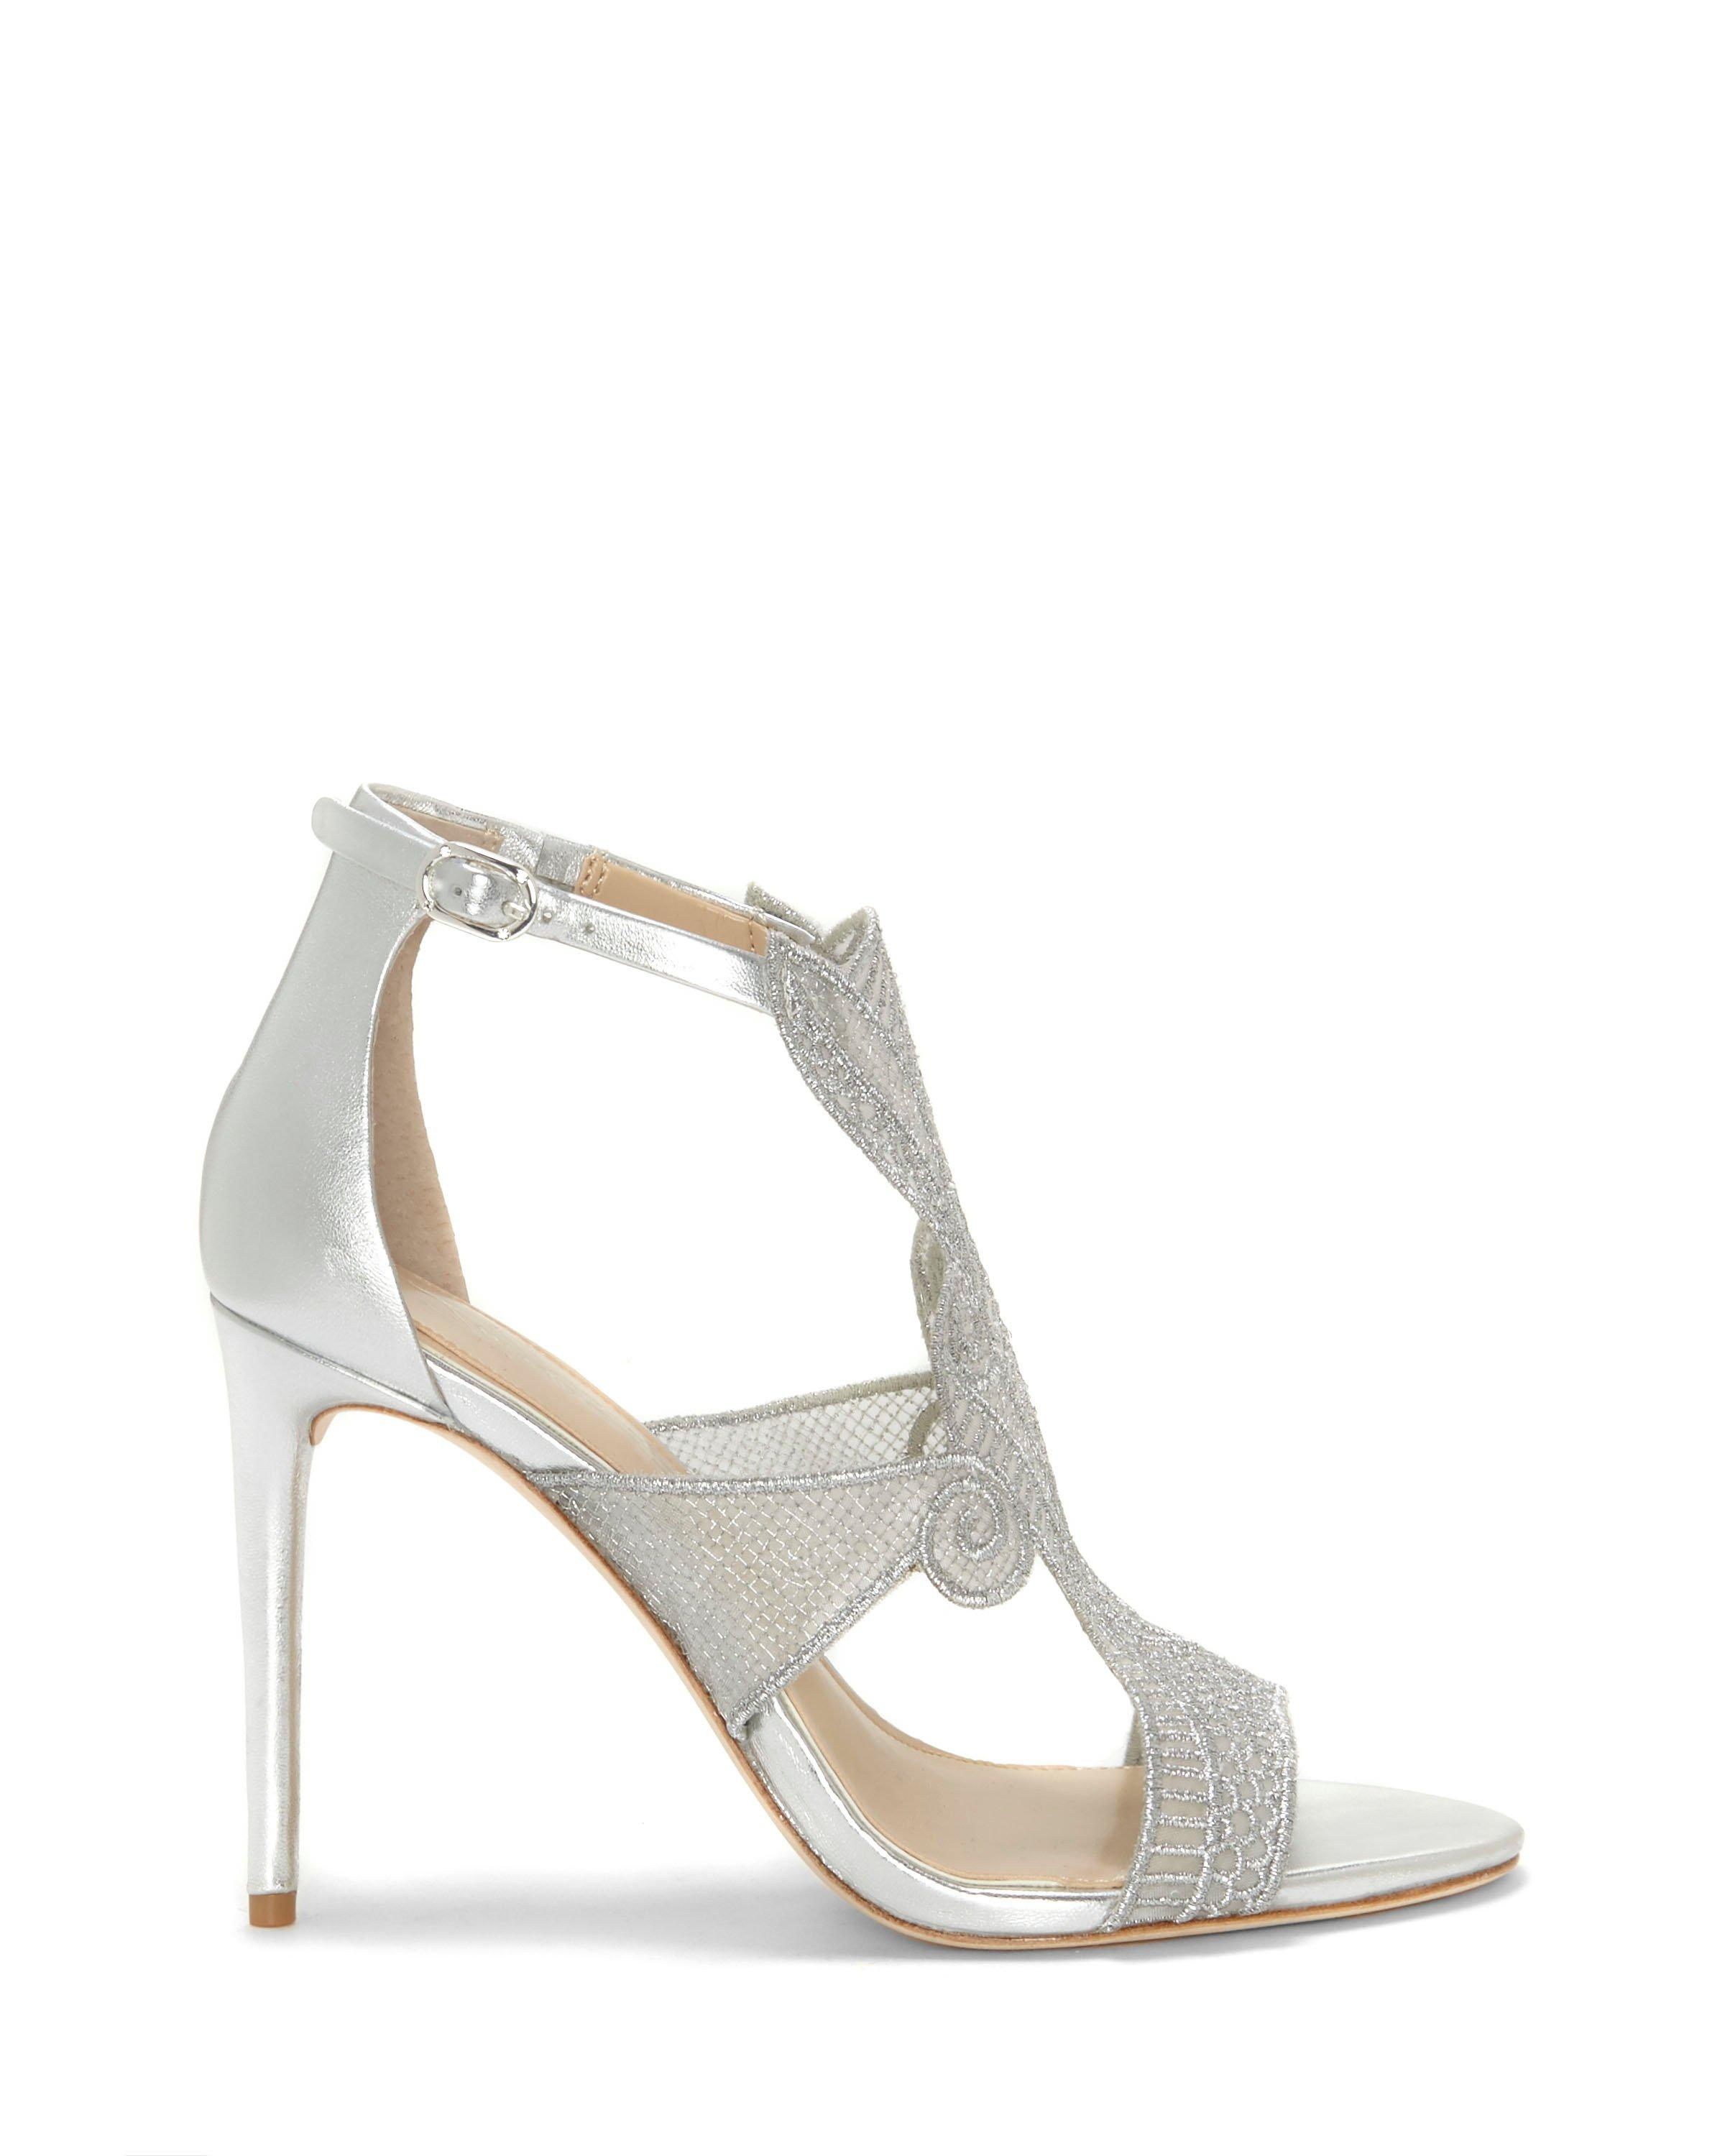 Imagine by Vince Camuto Rashi Embroidery Silky Mesh Dress Sandals ZXVDgnz